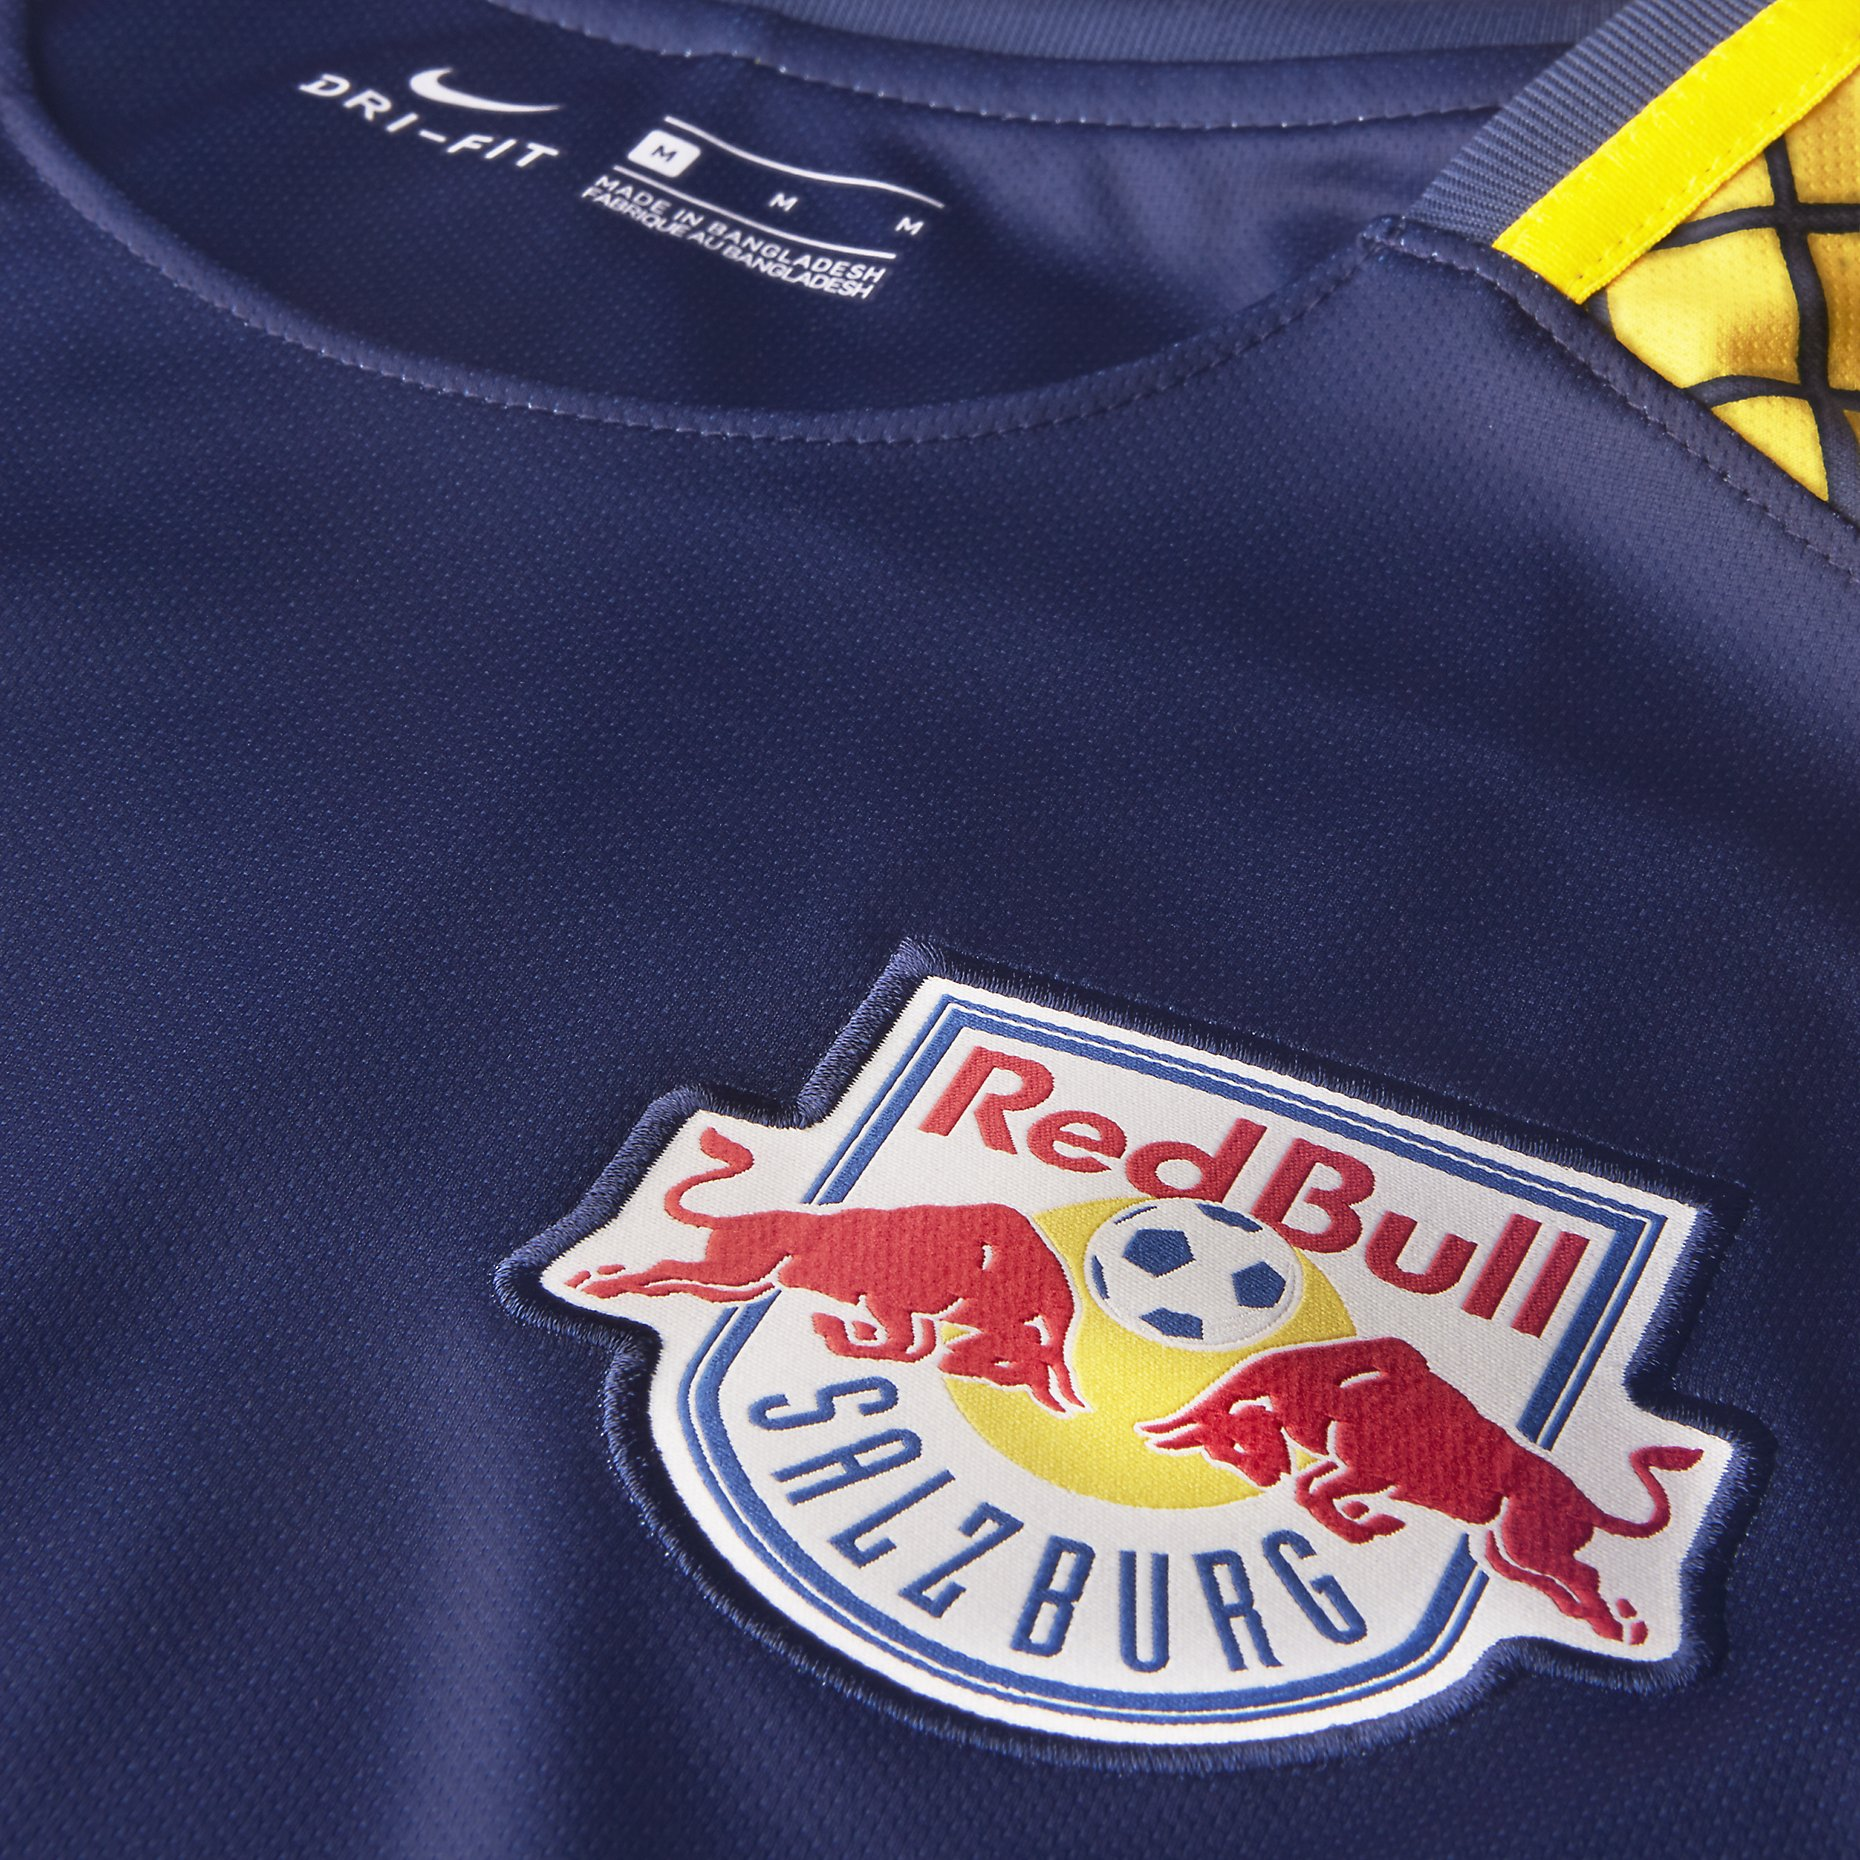 Red Bull Salzburg 17/18 Nike Away Kit | 17/18 Kits | Football shirt blog